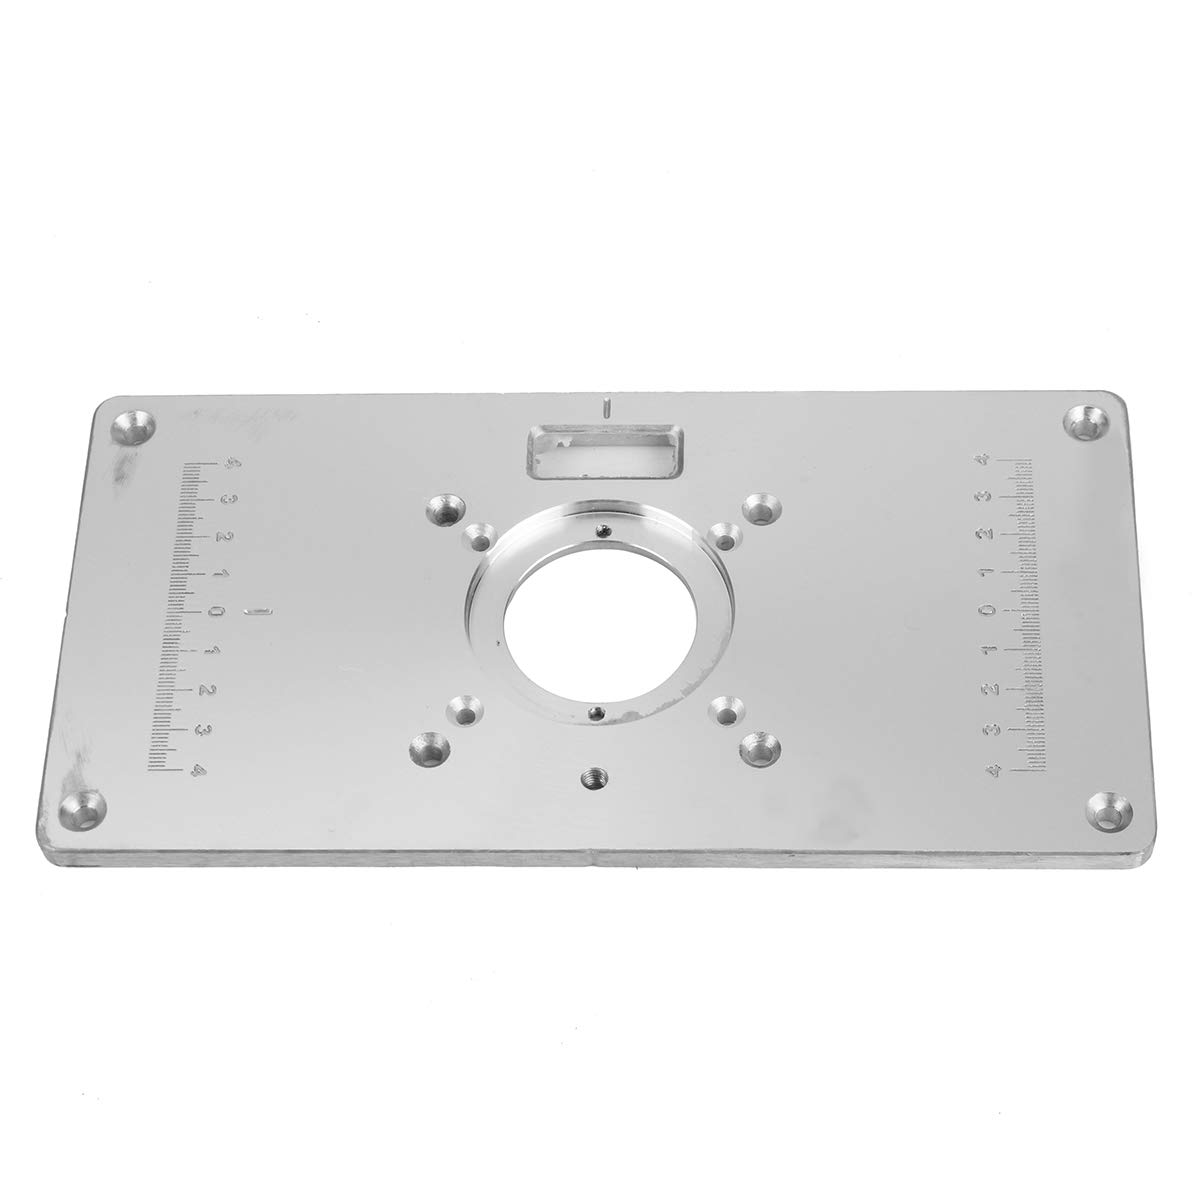 Useful Tools Router Table Insert Plate,Multifunctional Aluminium Alloy Router Table Insert Plate for Makita 700C Woodworking by MAOFU (Image #8)